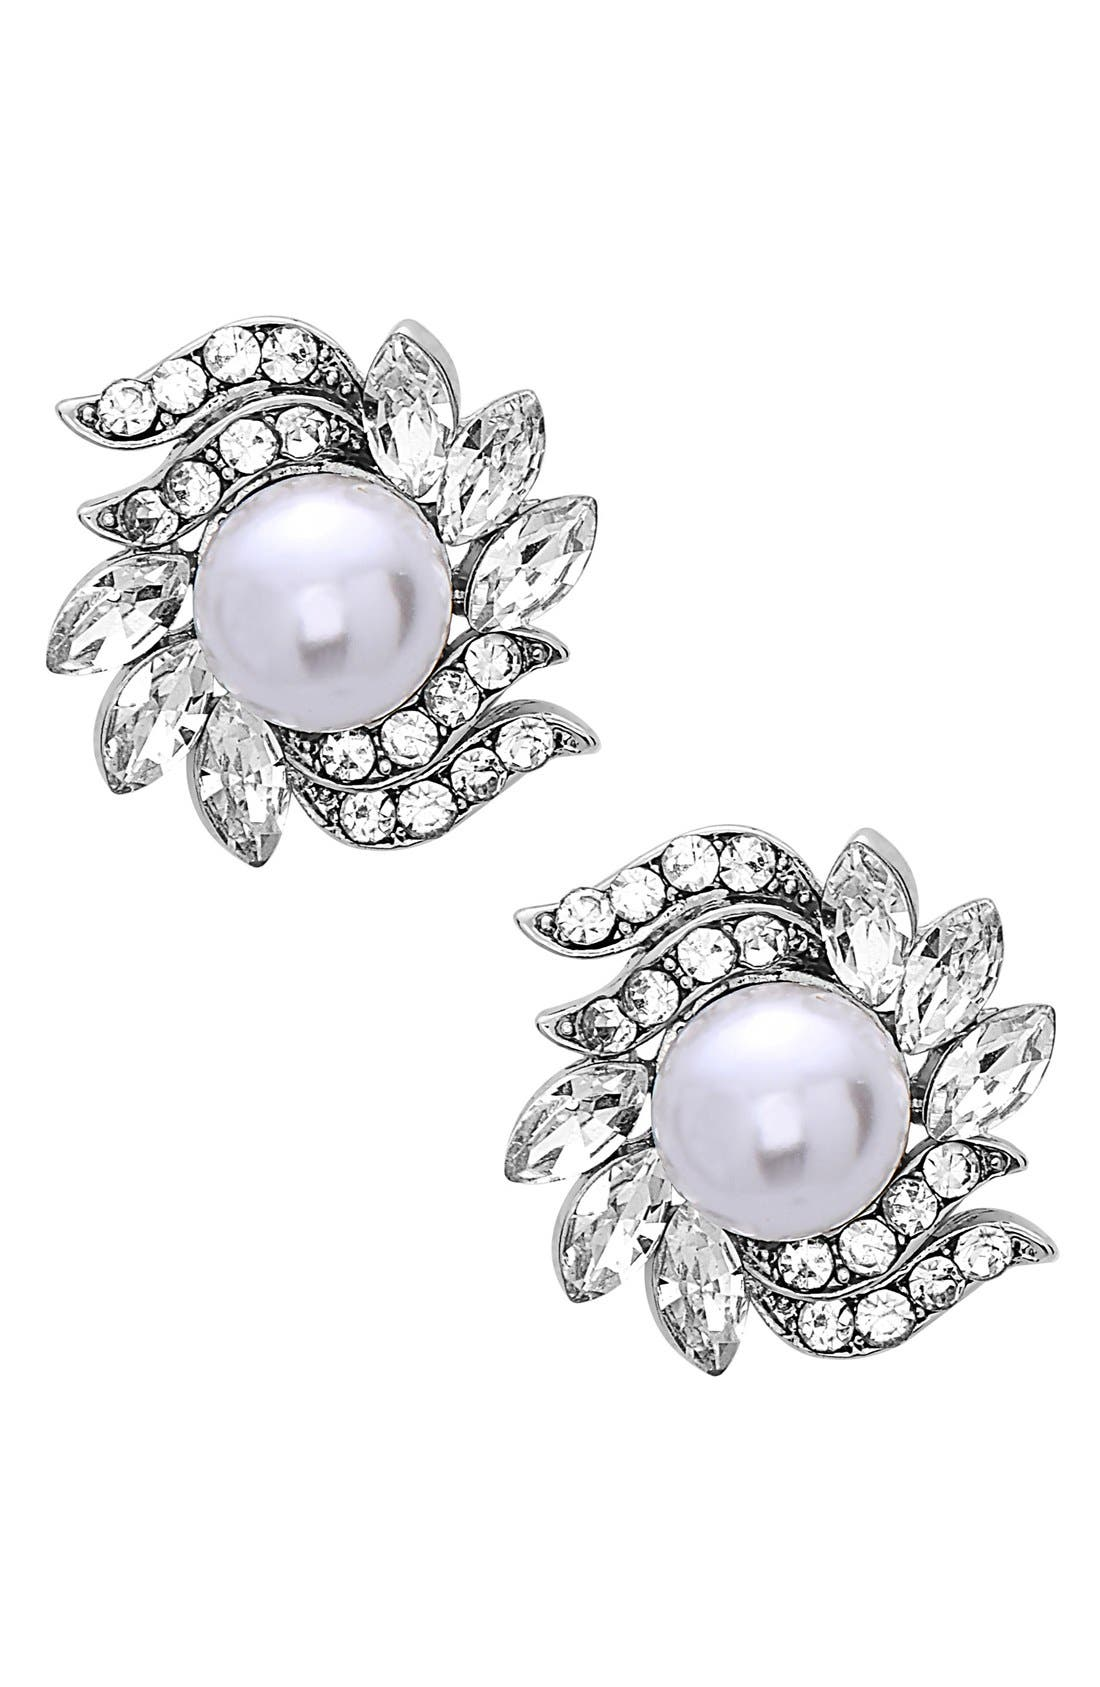 Crystal & Faux Pearl Floral Stud Earrings,                         Main,                         color, Silver